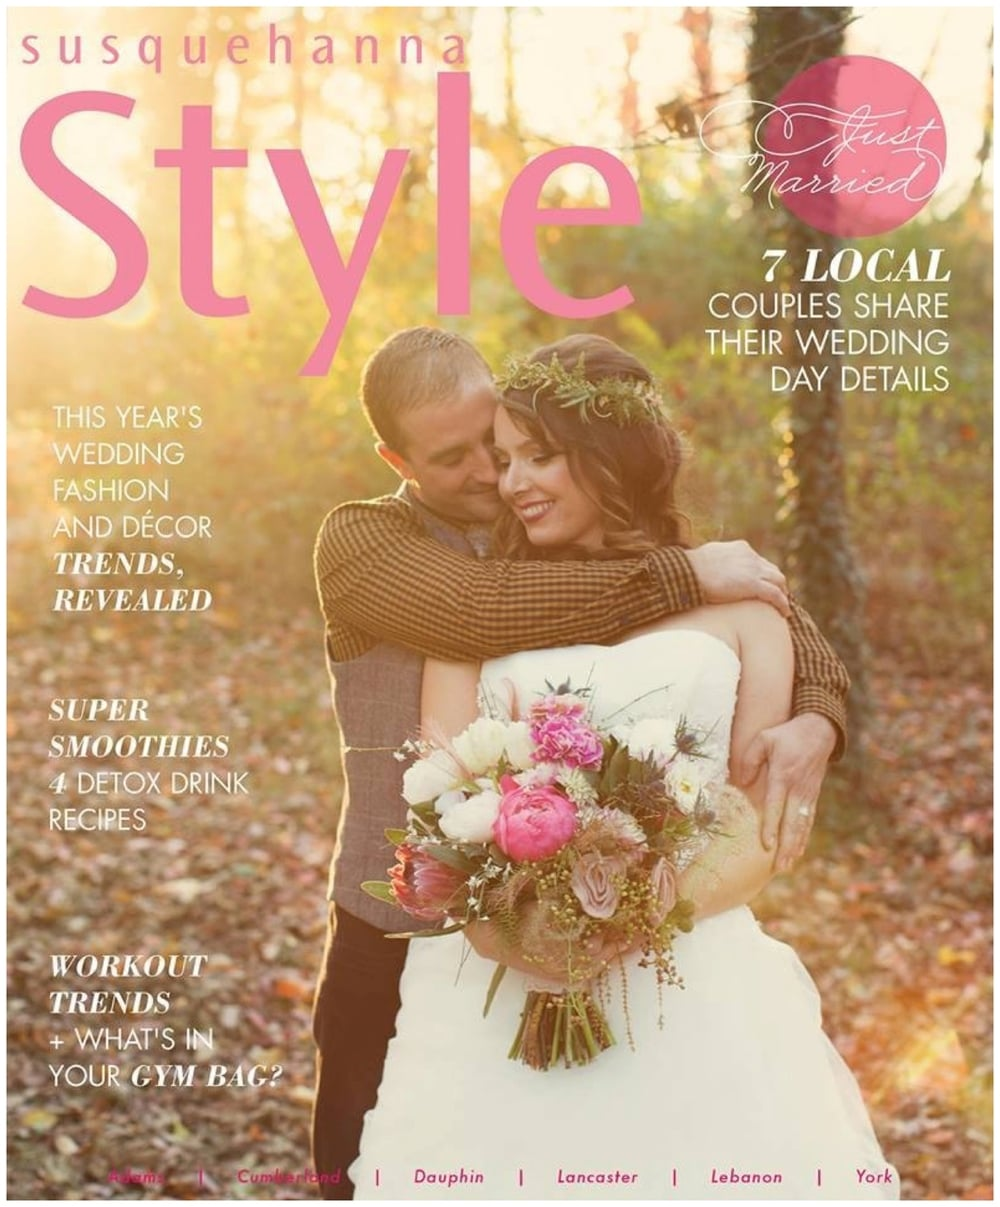 We had the honor and privilege of being featured on the cover of Susquehanna Style Magazine! We are so very thankful to everyone who helped make this our dream day!